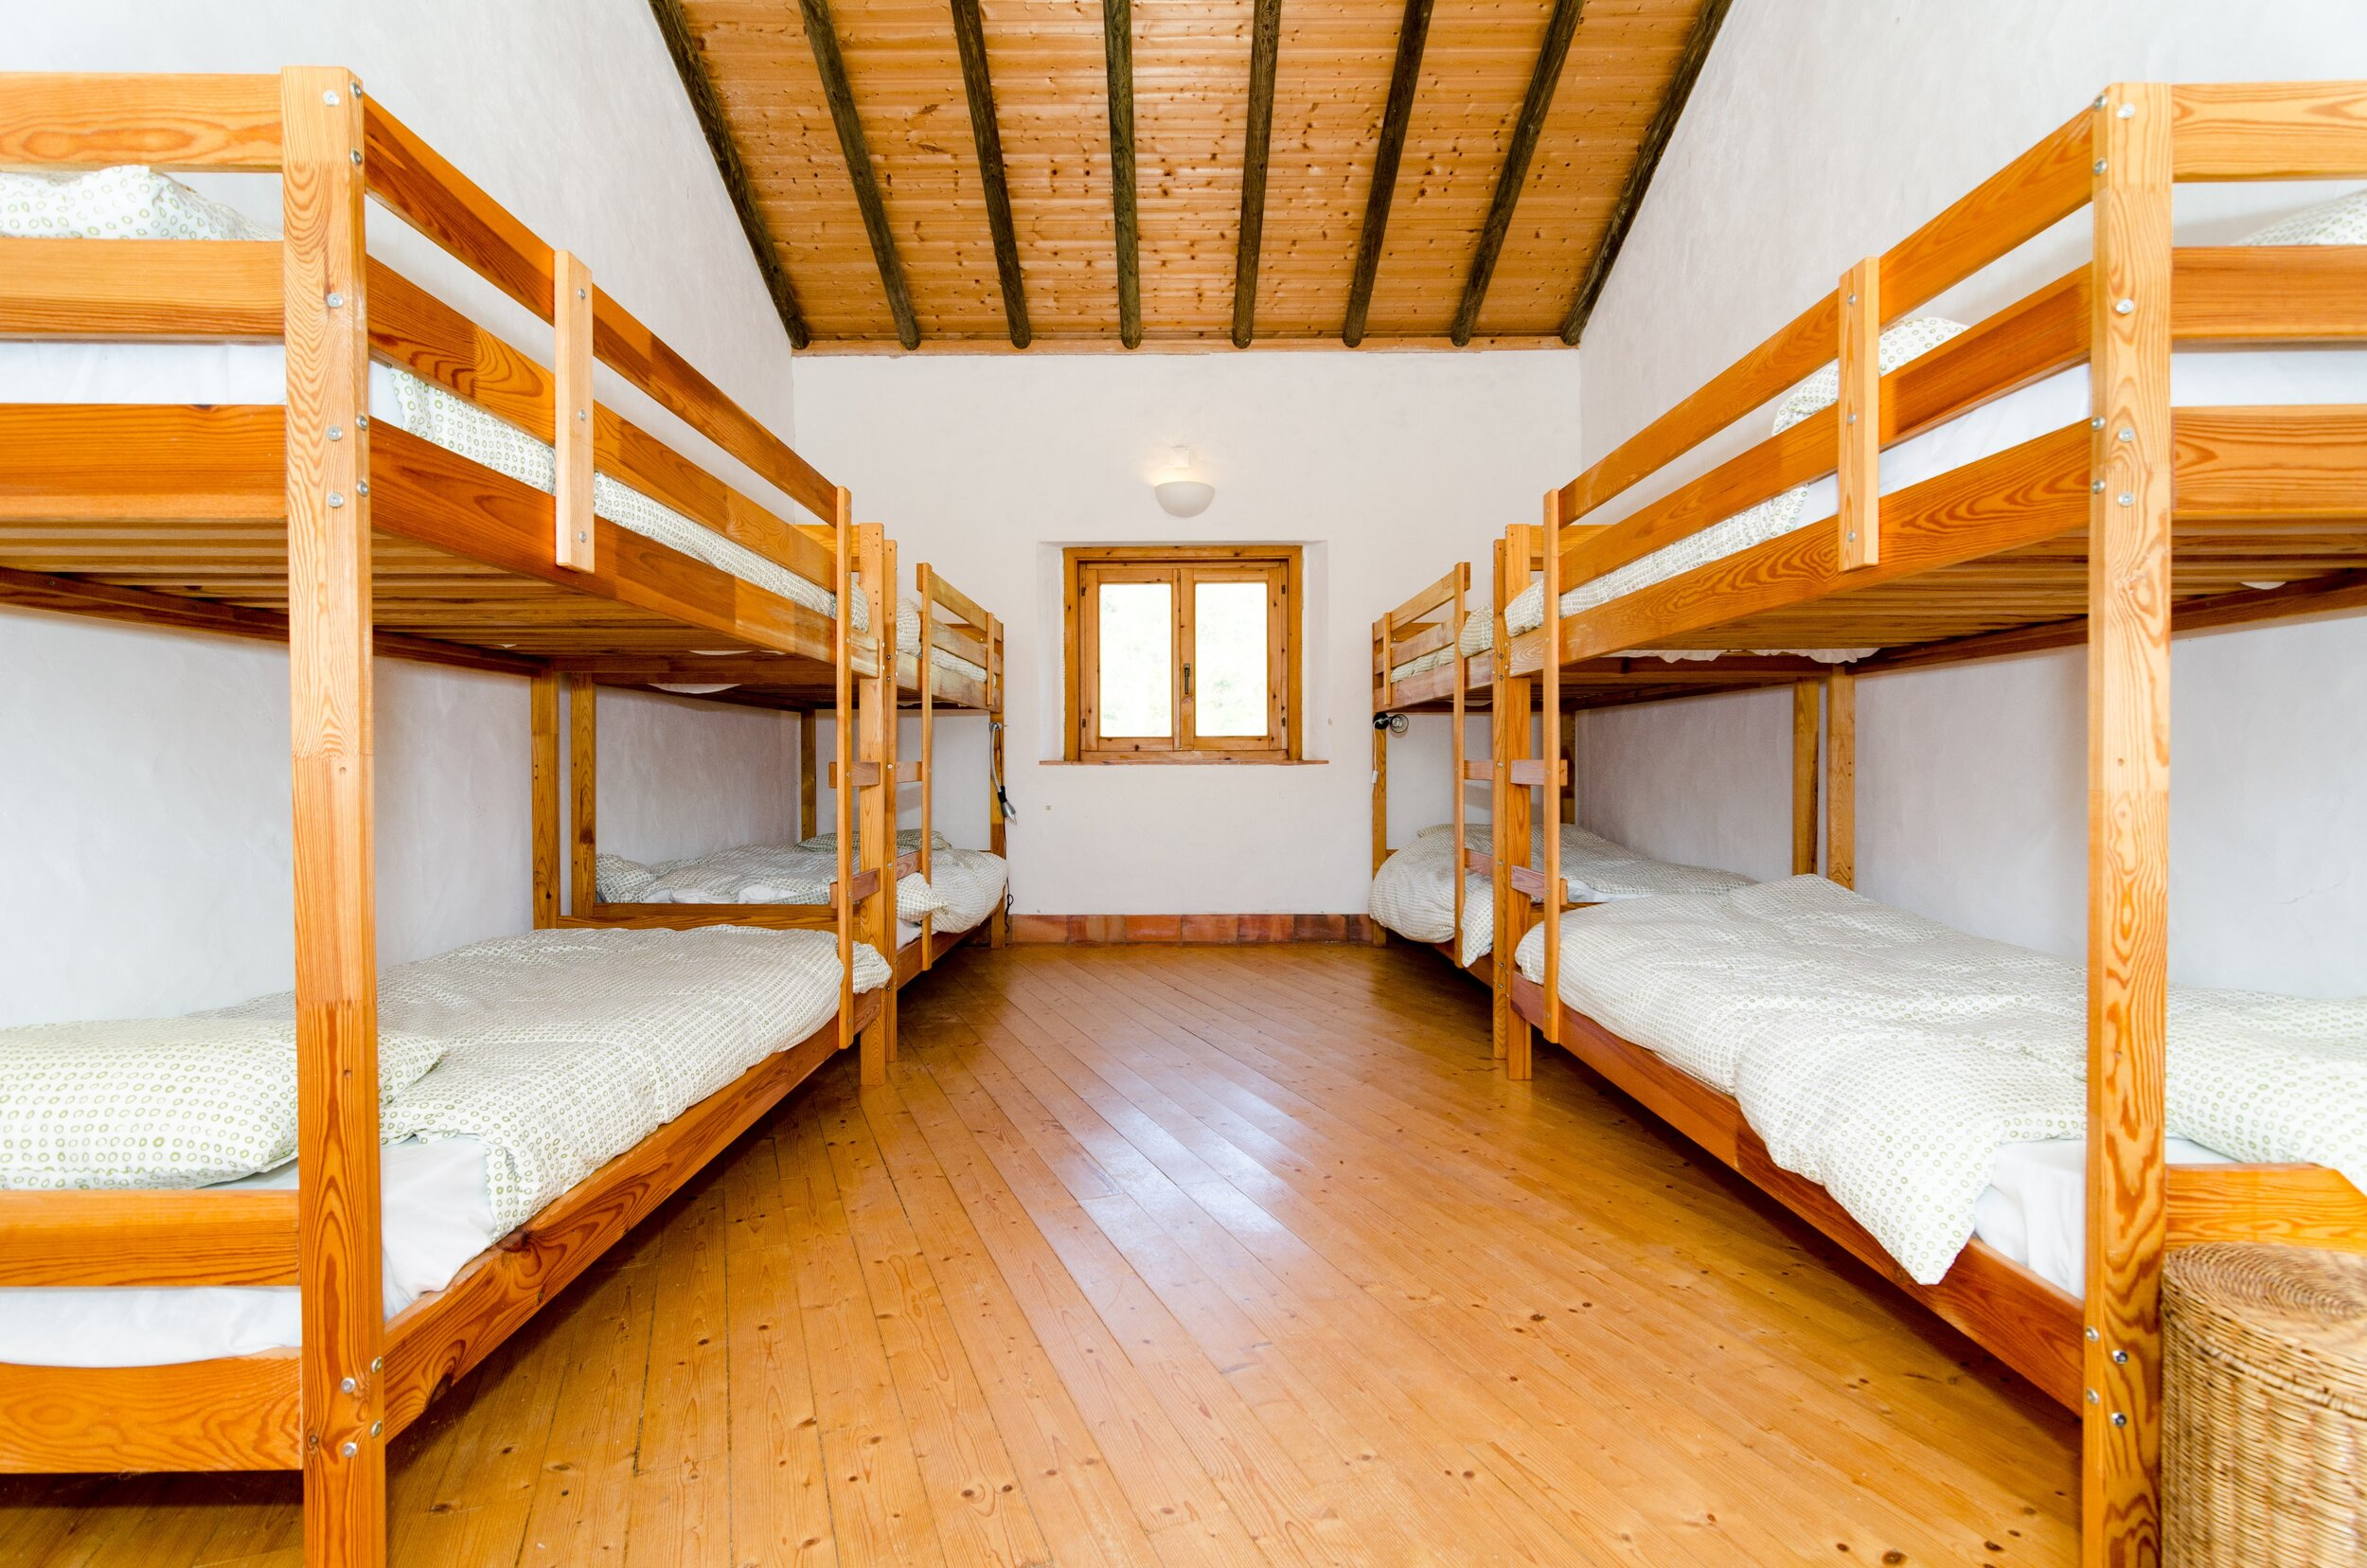 COSY BUNK BEDS   - SHARED ROOM. MAX 5 PEOPLE (TWIN BEDS)  - GENDER NEUTRAL ROOM  - SHARED BATHROOM / SHOWER / TOILET  - MORE COMMUNAL SHOWER / TOILETS AVAILABLE CLOSE BY   PRICE: EUR 1050 / PER PERSON